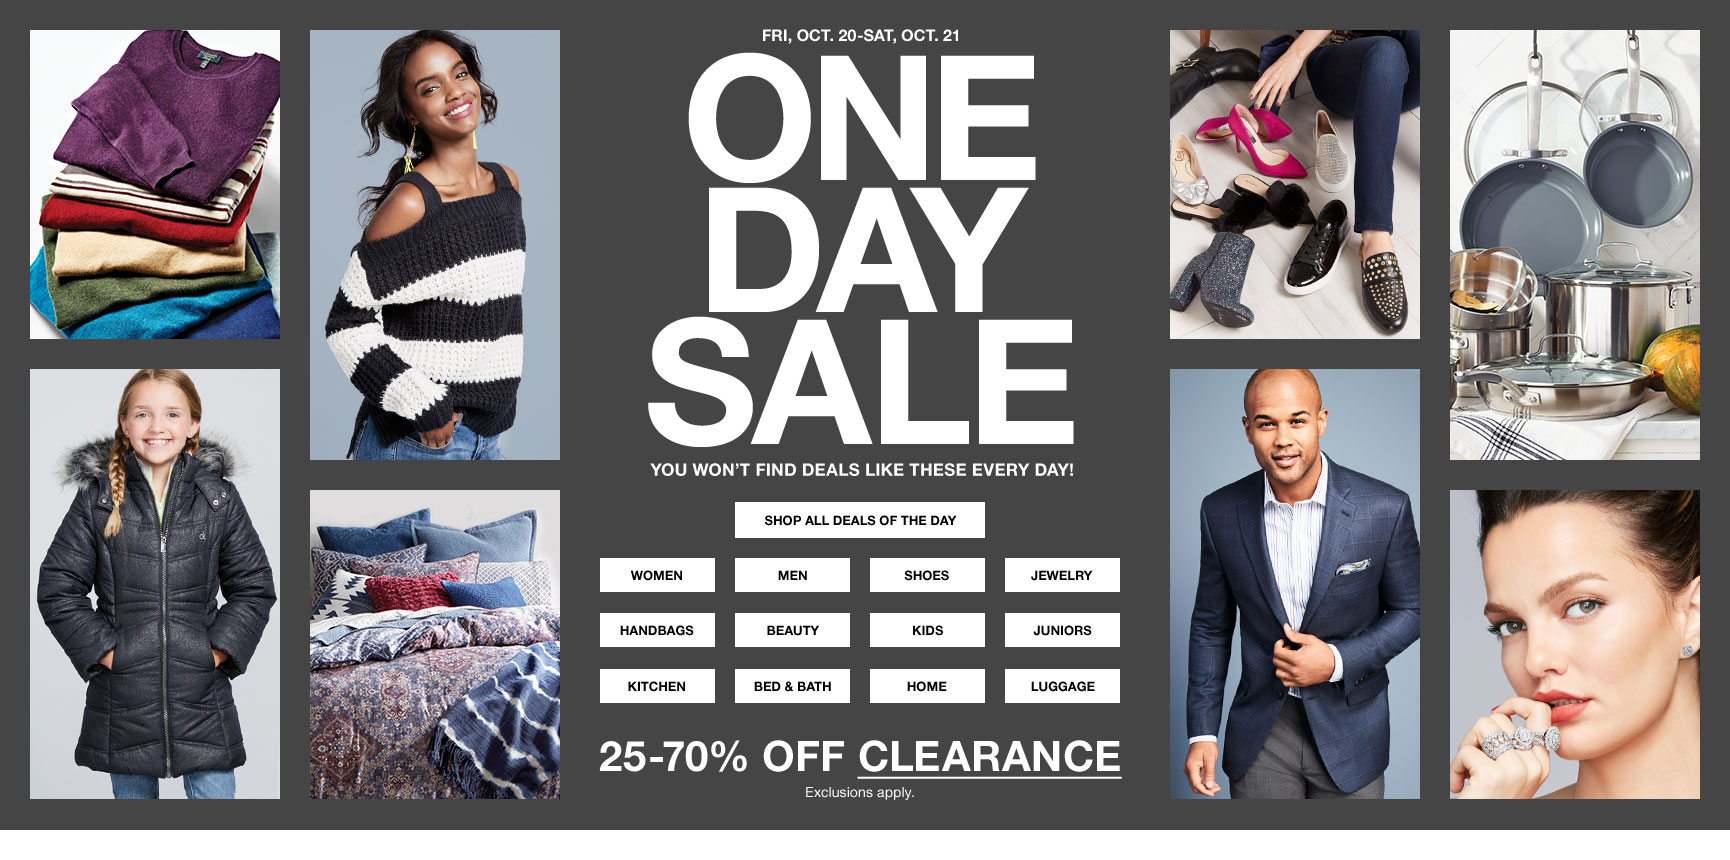 Friday, October 20 through Saturday, October 21. One day sale. You won't find deals like these every day! 25 to 70 percent off clearance. Exclusions apply.